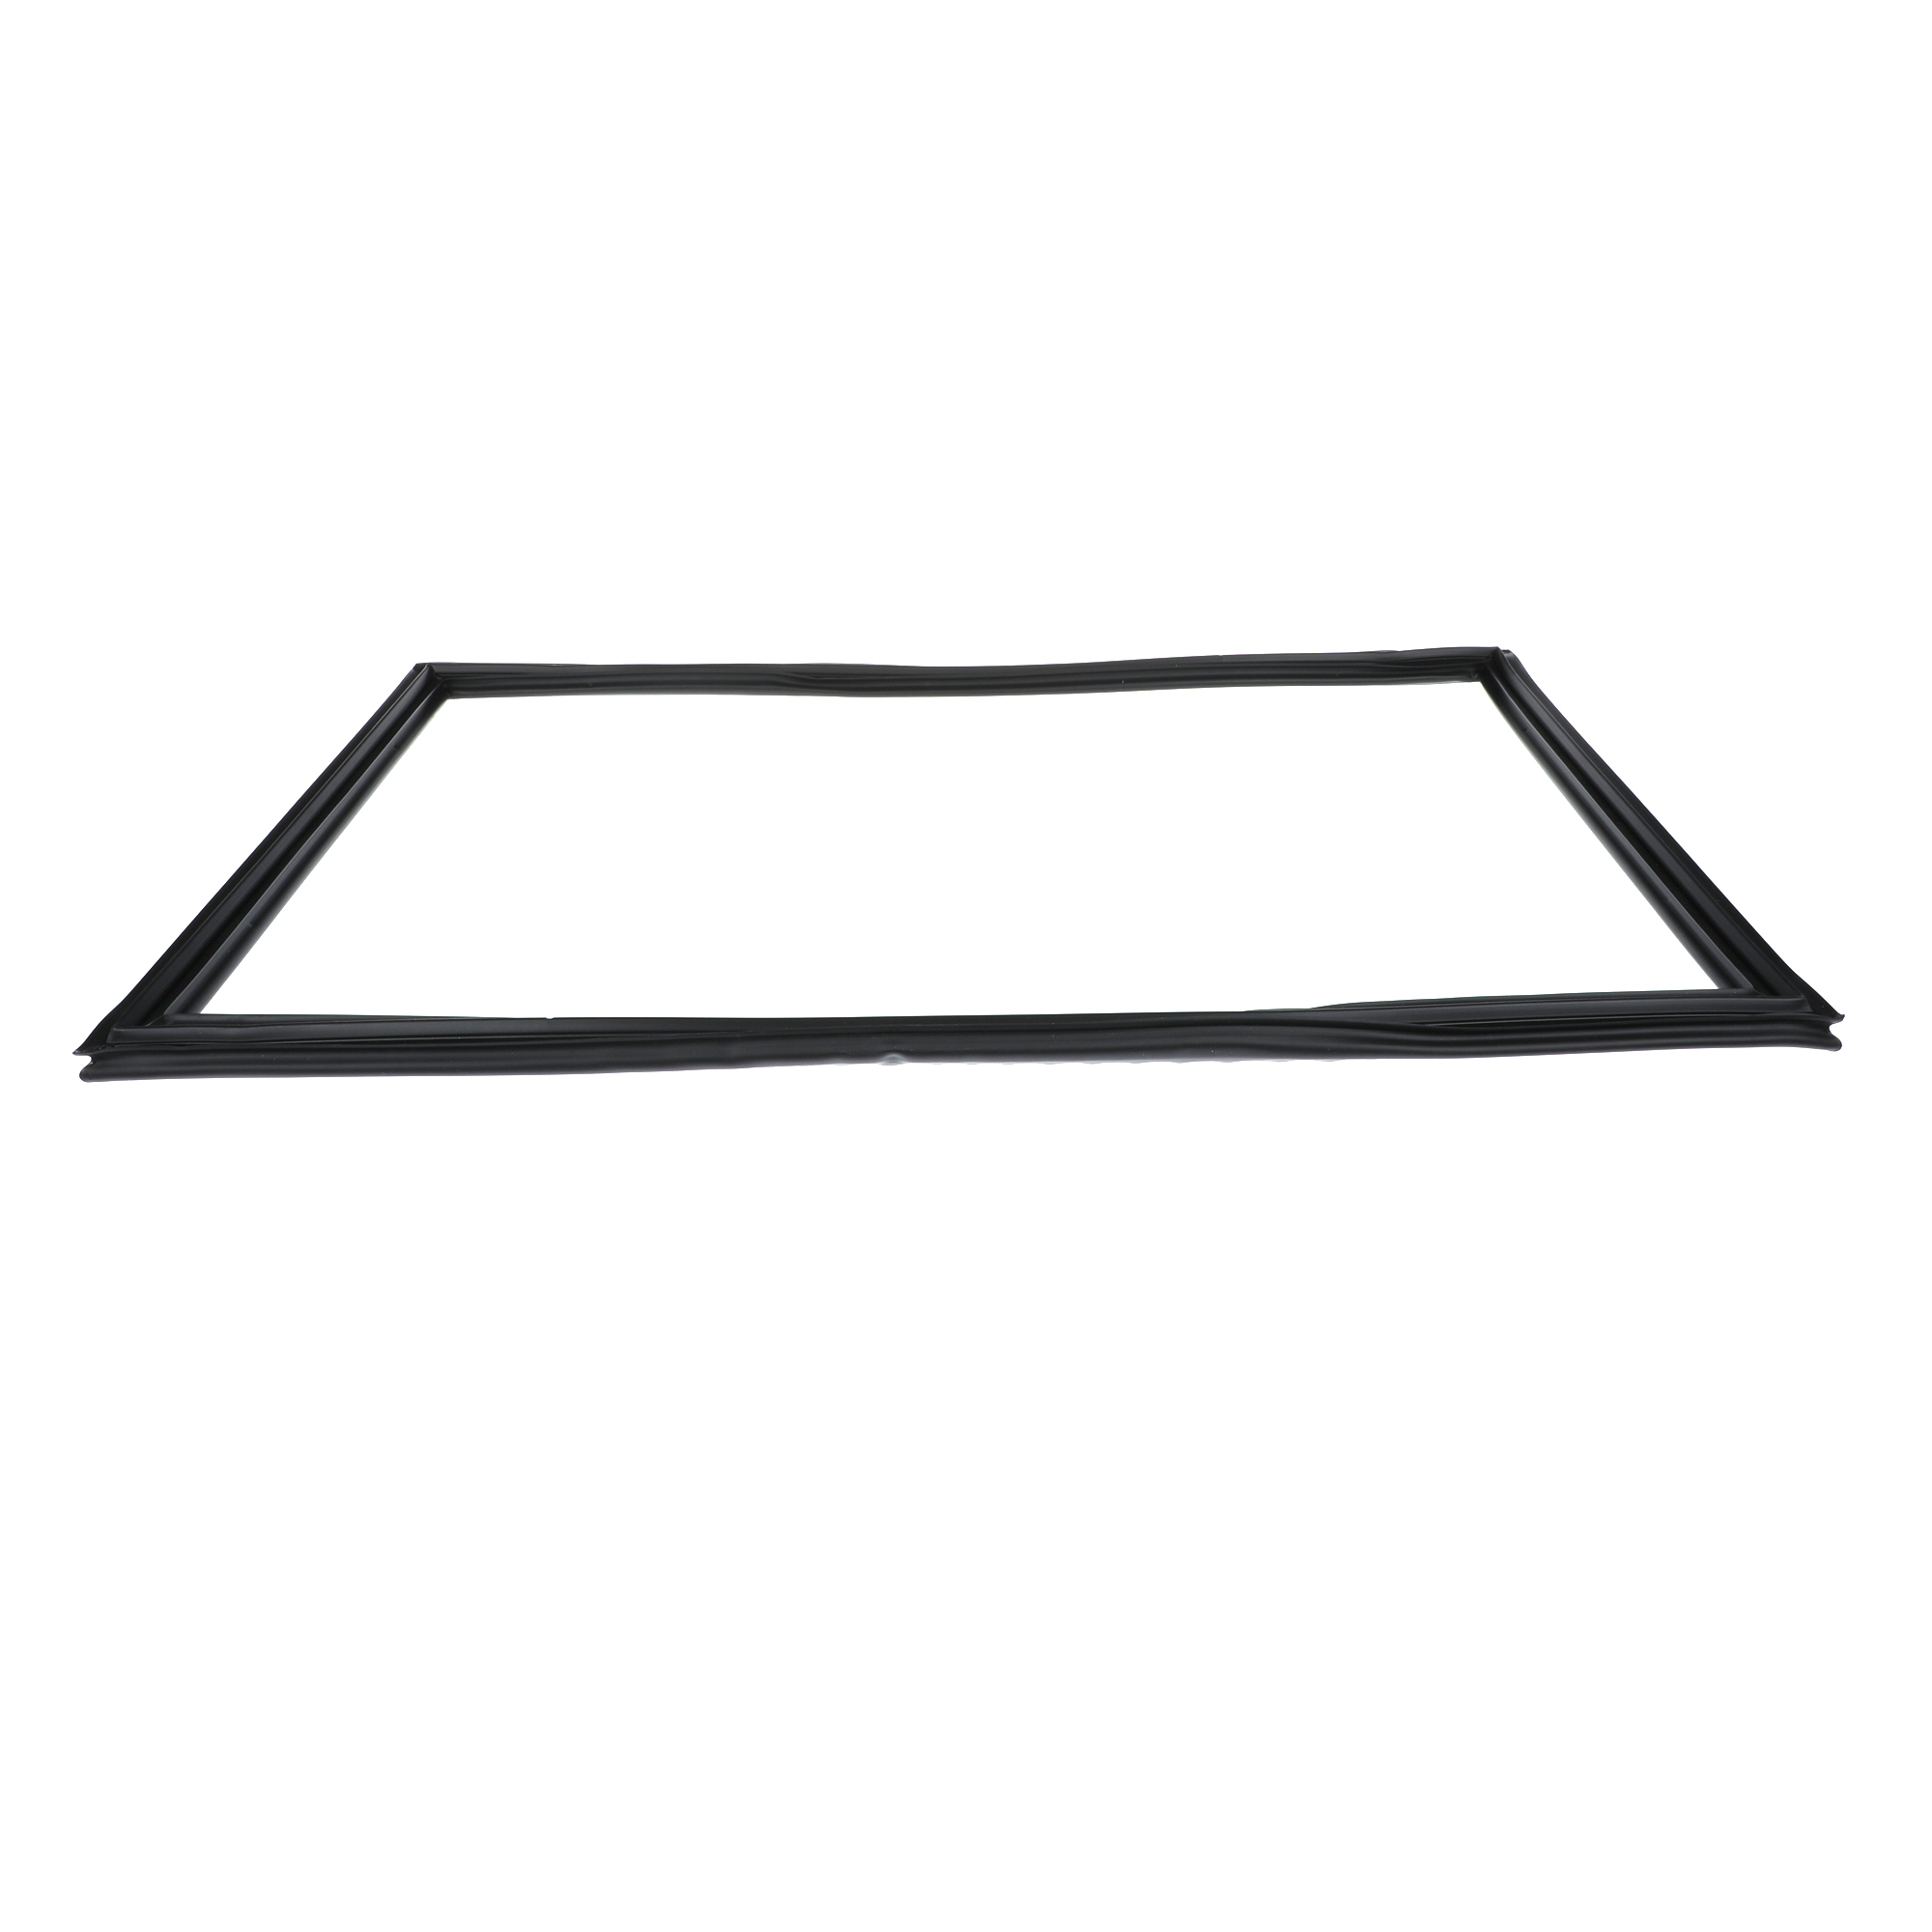 DOOR GASKET 403.5X636MM MAGNETIC BLACK